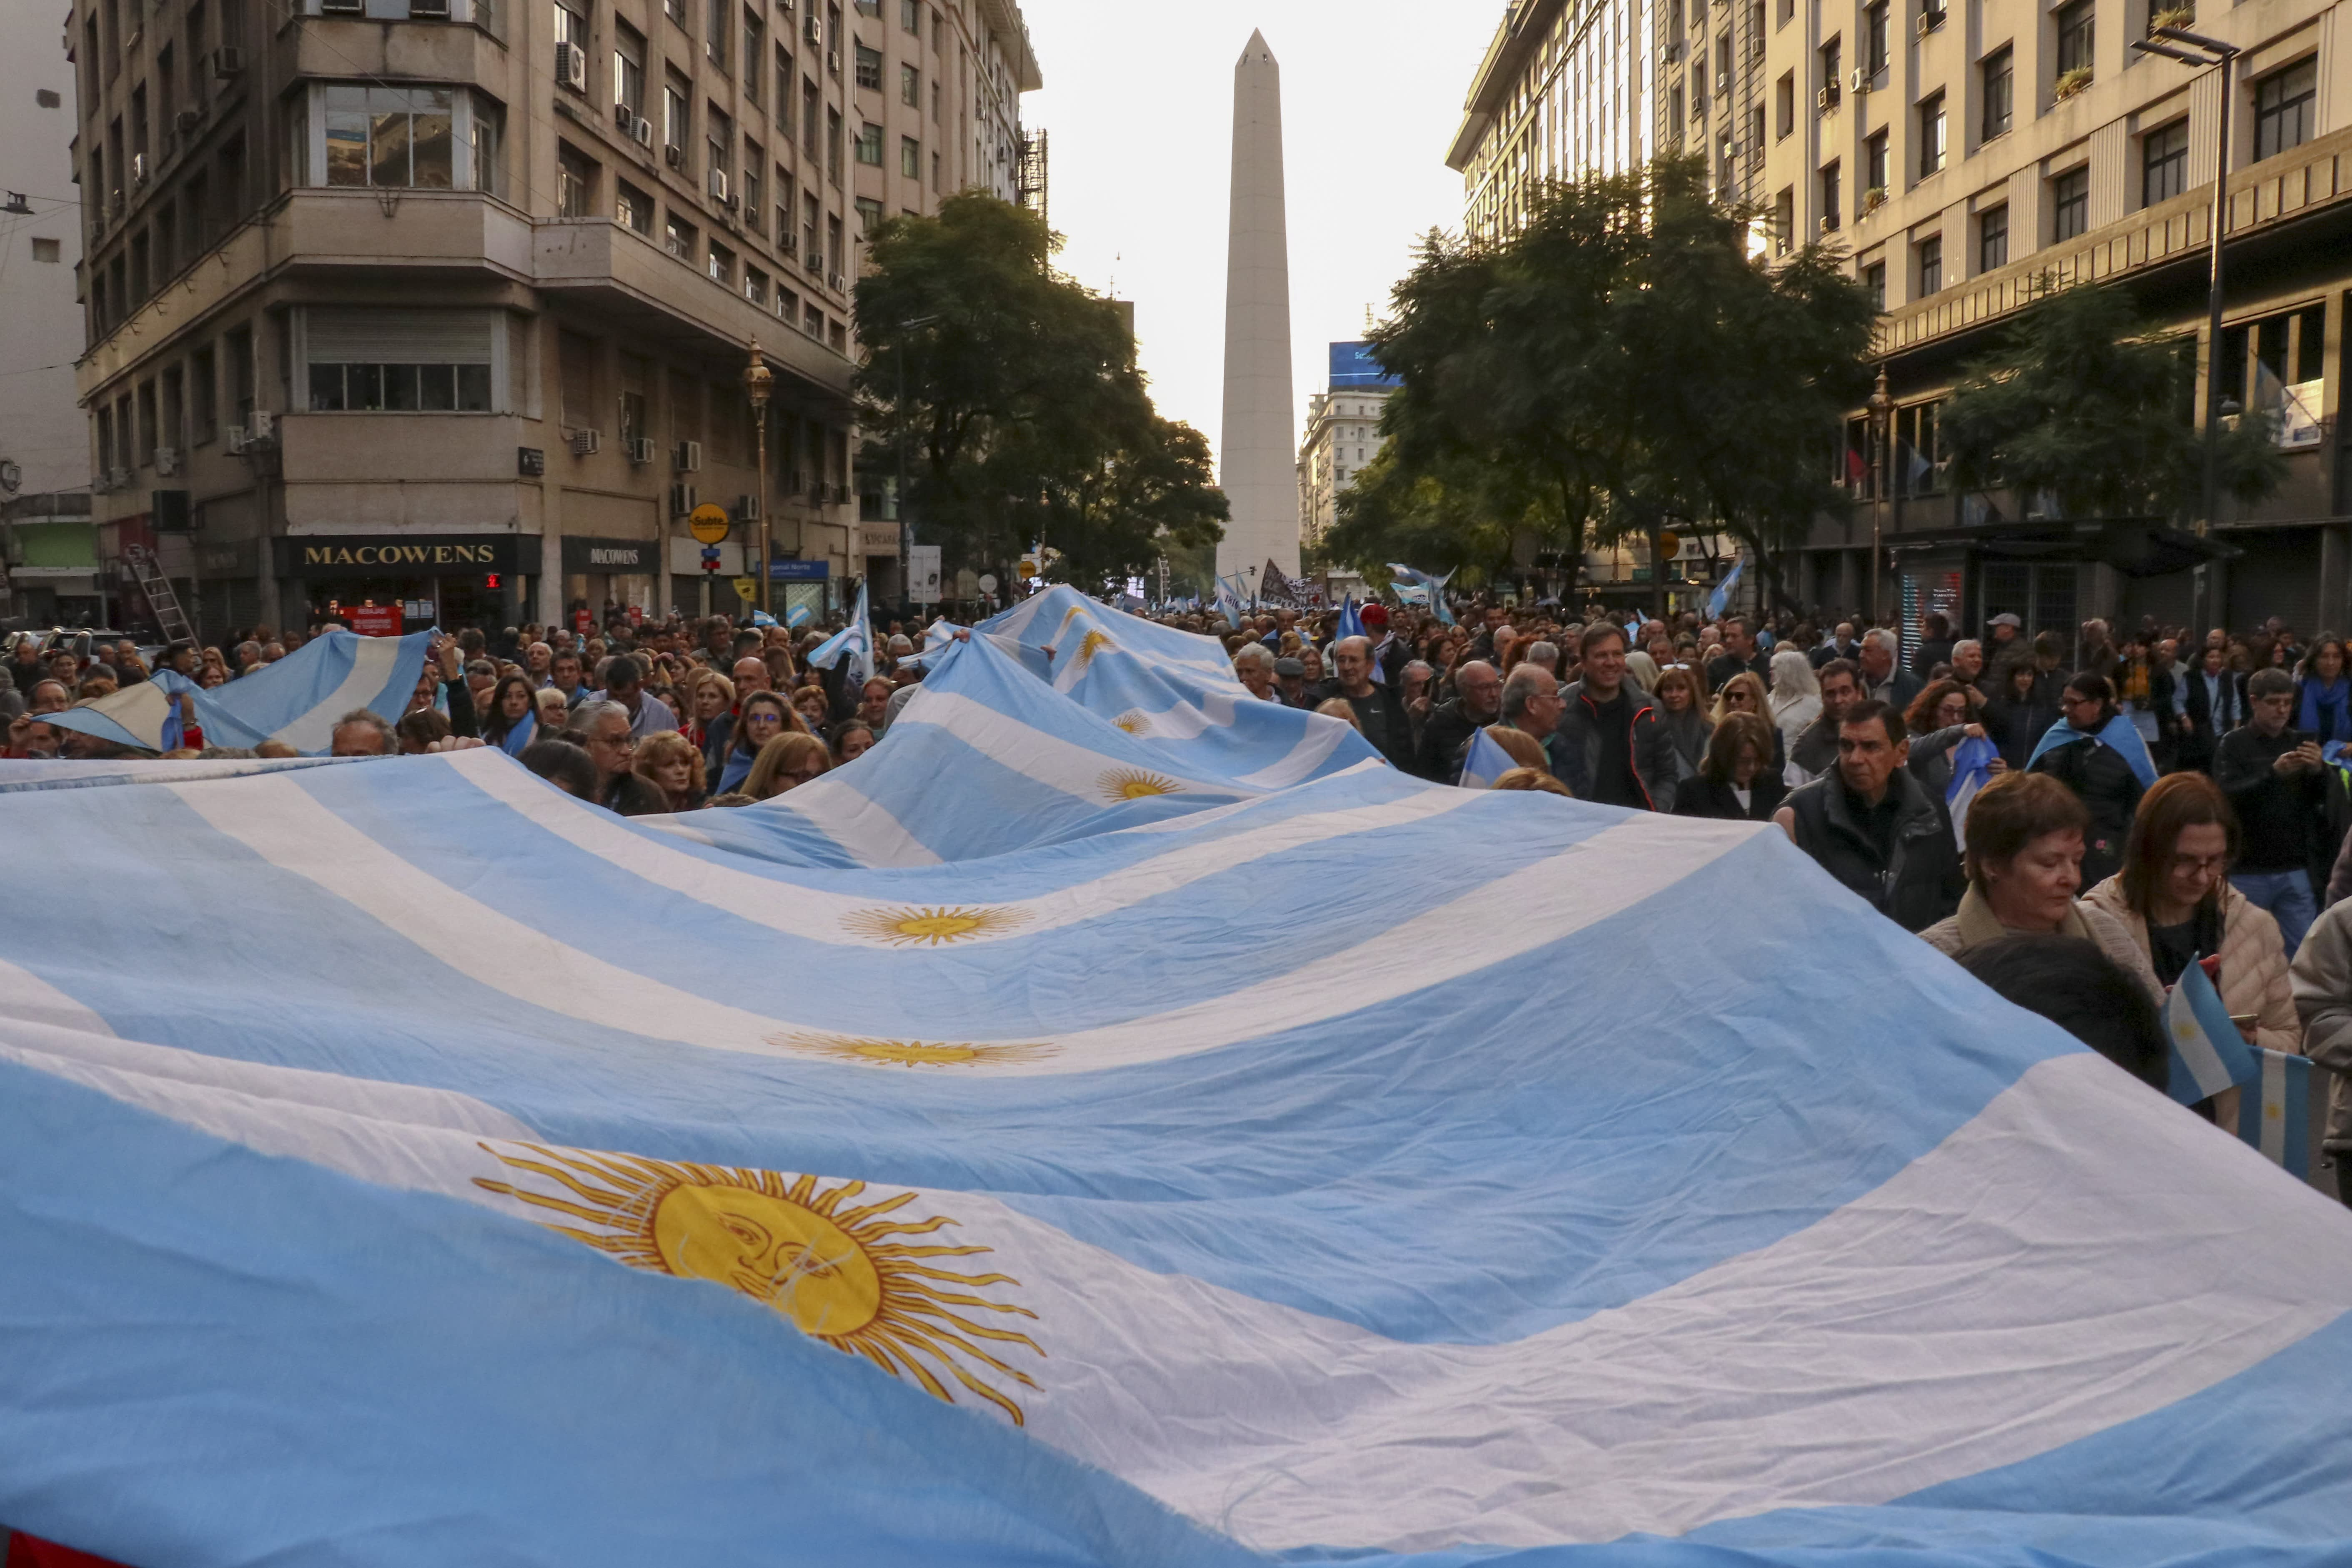 Argentina has asked for more time to pay its debts as it struggles to avoid another default